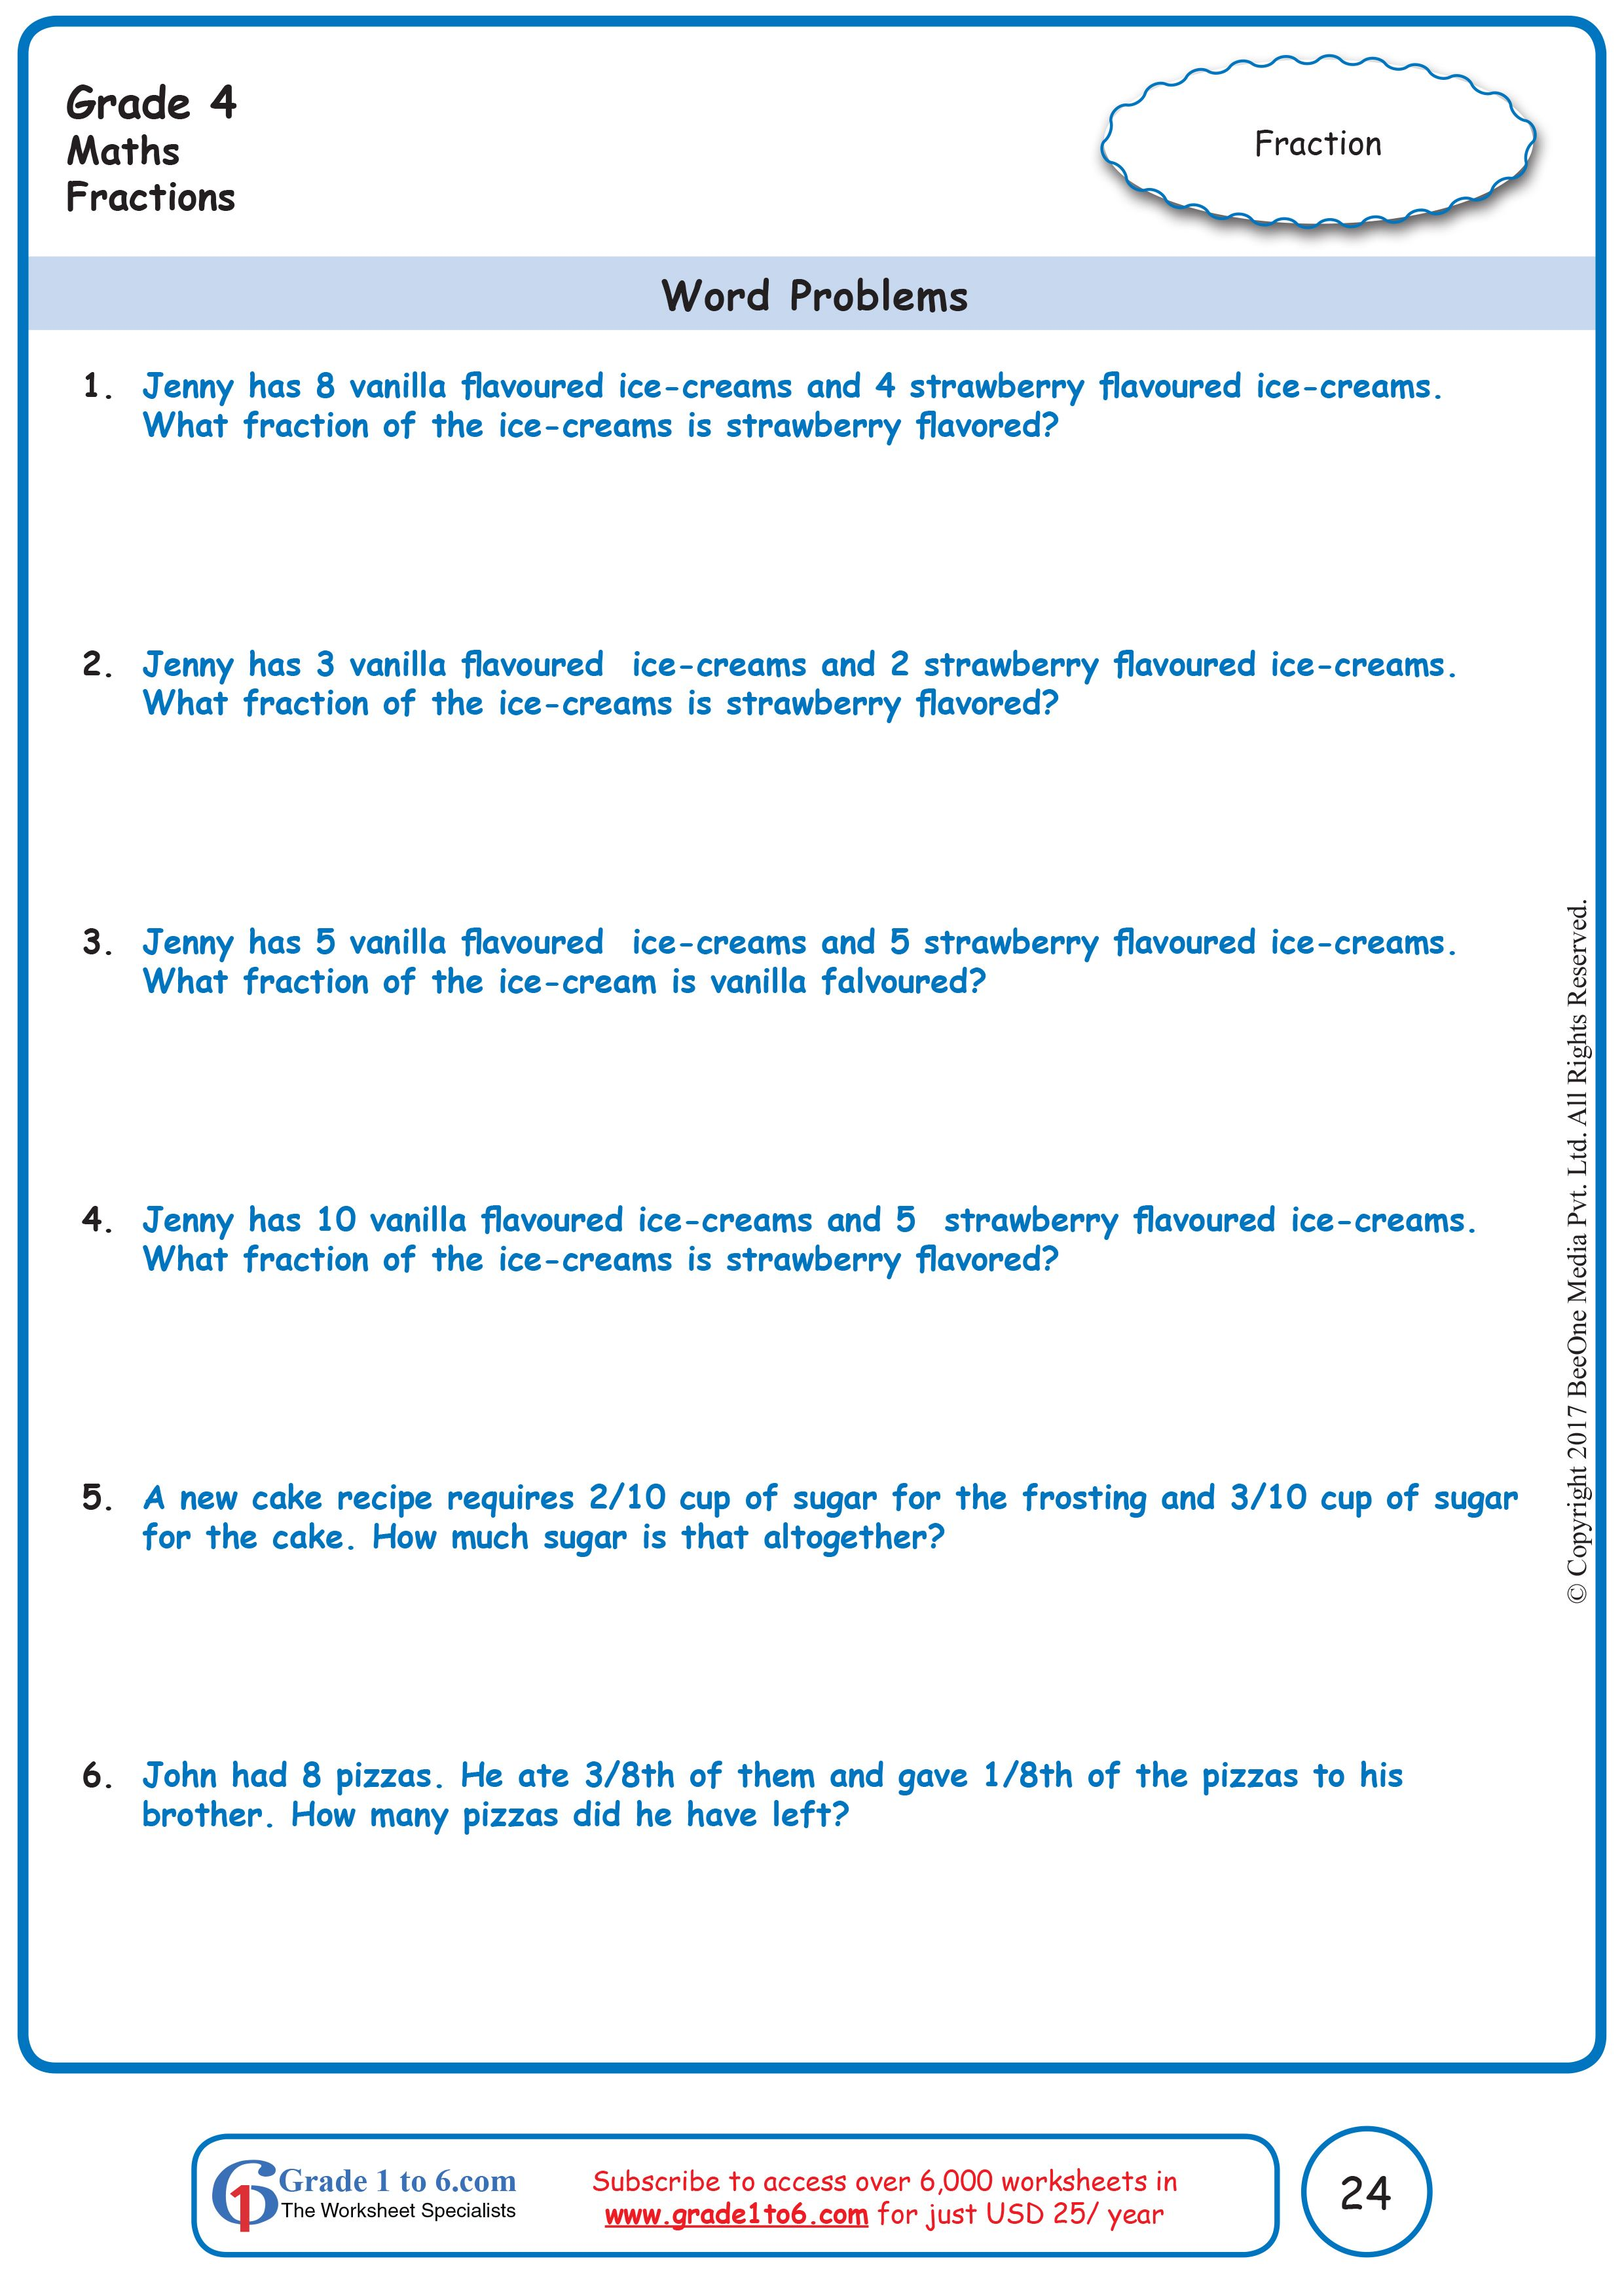 Word Problems In Fractions Word Problem Worksheets Math Word Problems Fraction Word Problems